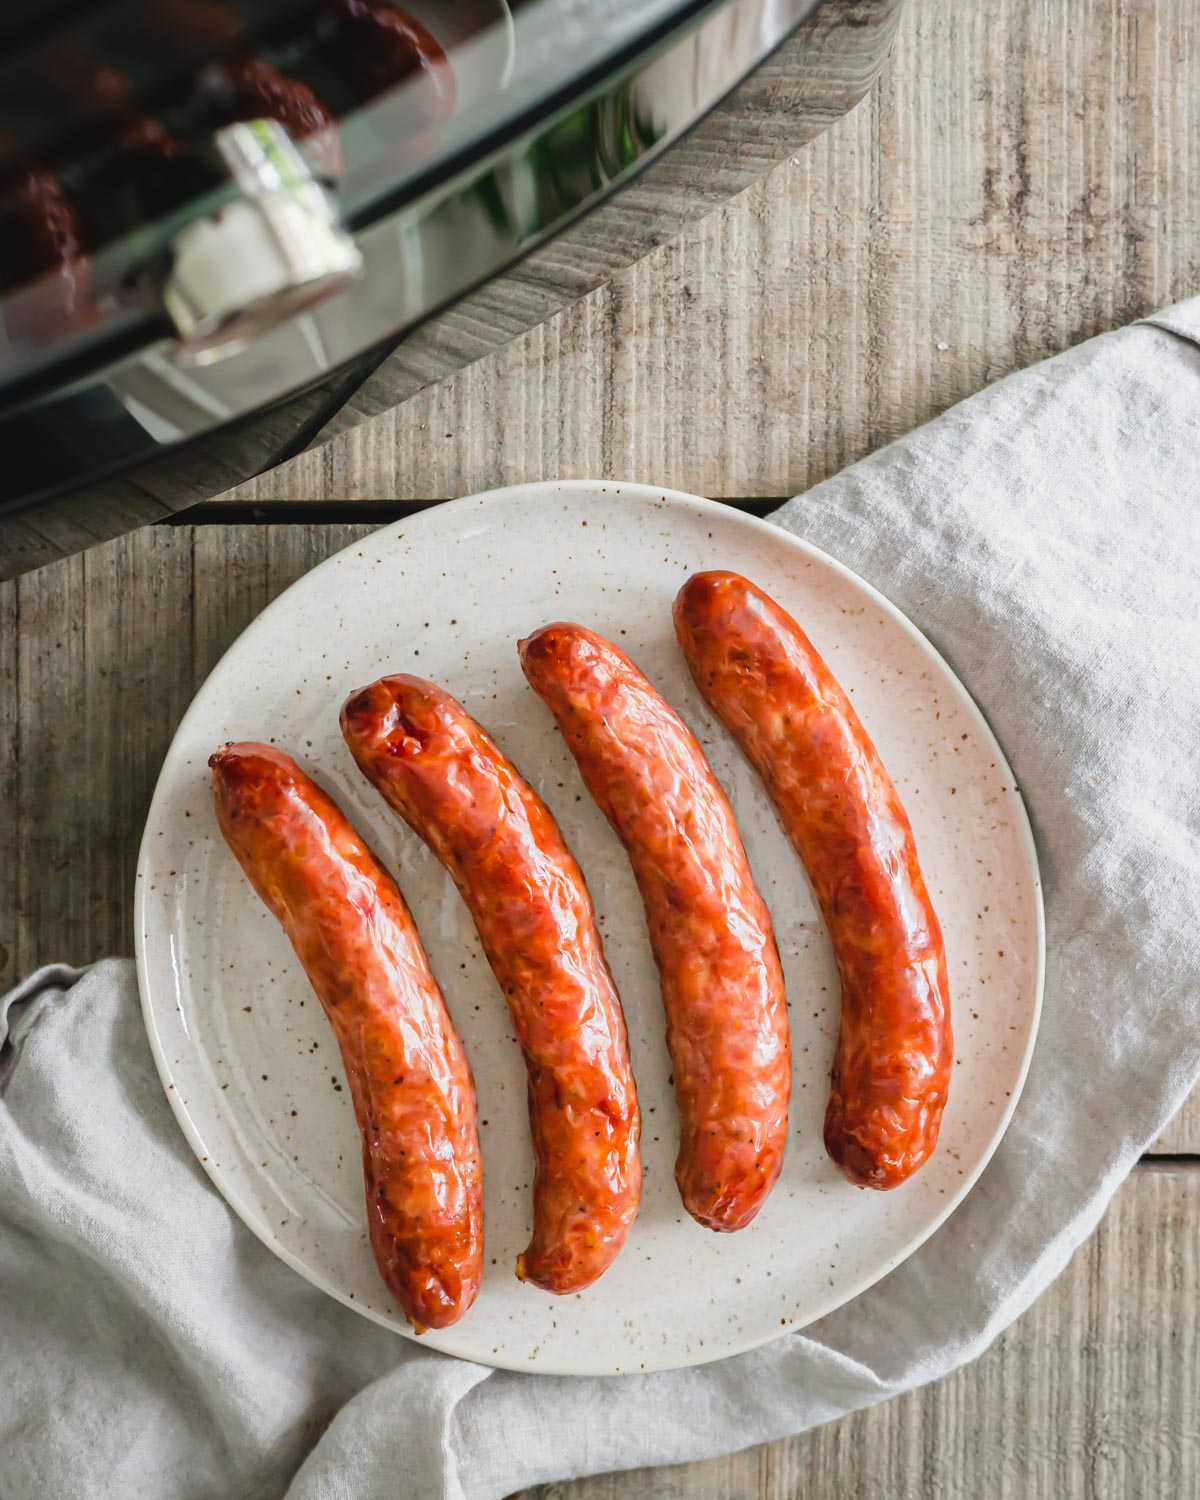 Perfectly golden brown, crispy Italian sausage cooked in the air fryer.